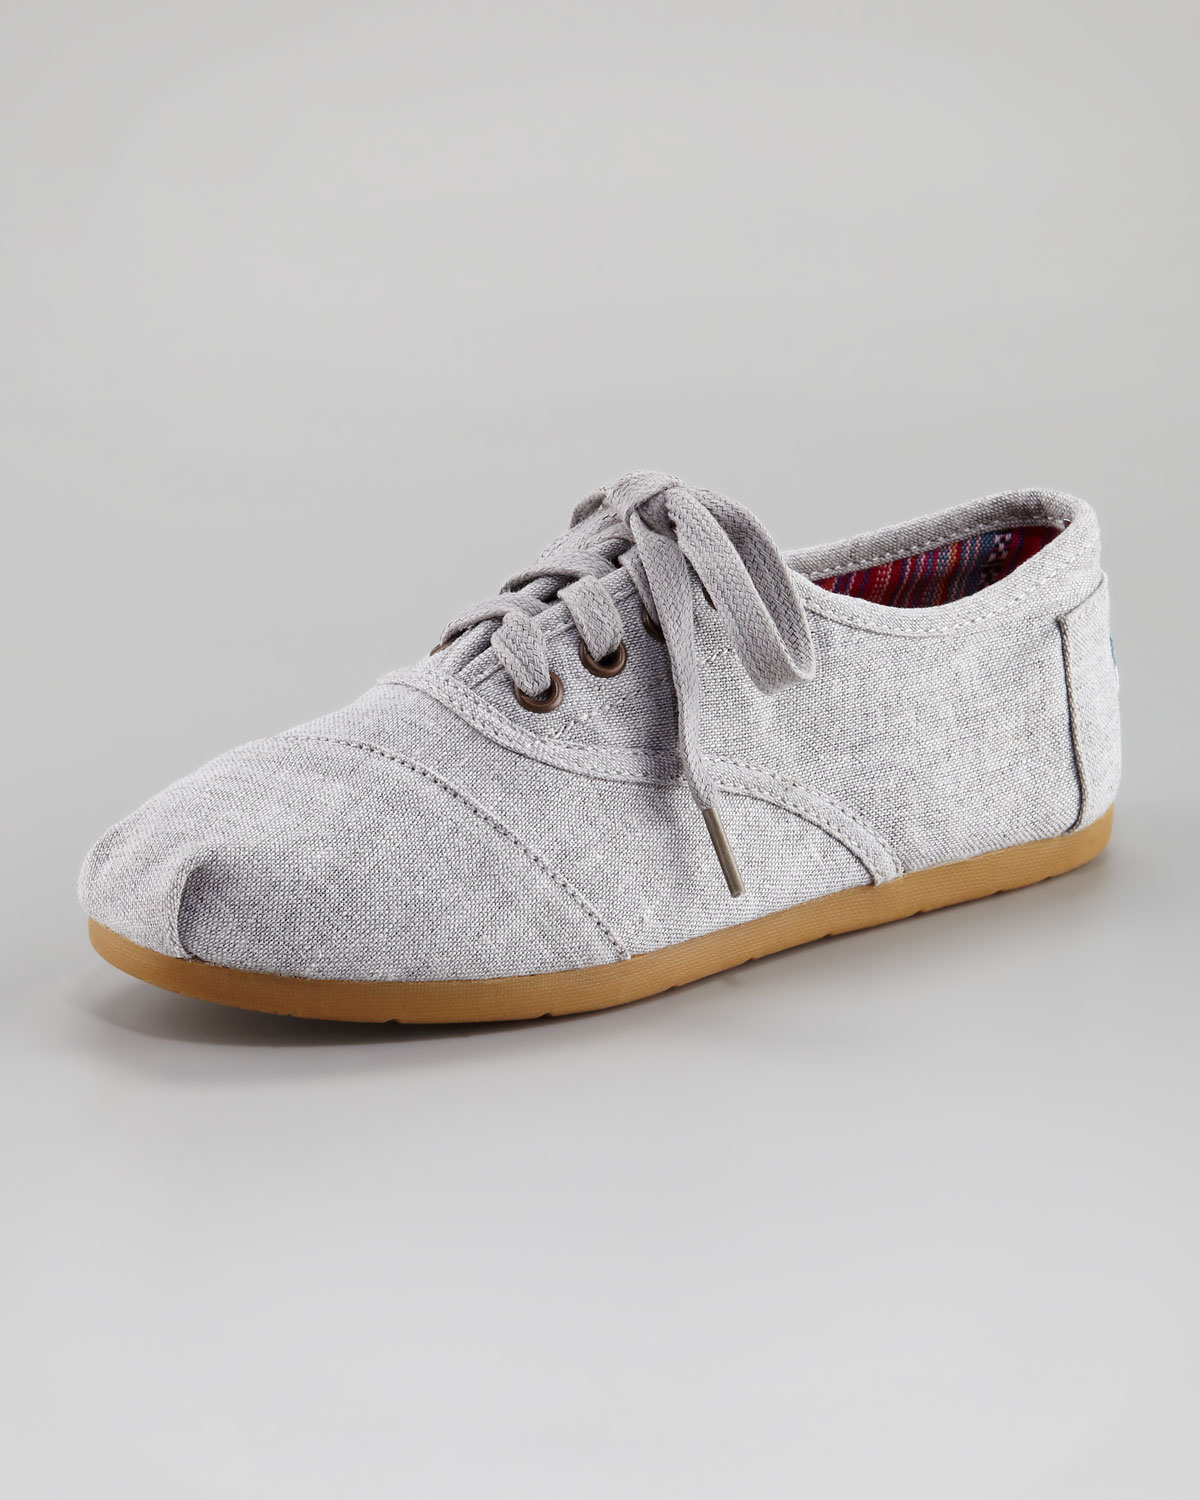 Toms Fabric Laceup Shoe In Gray (grey)